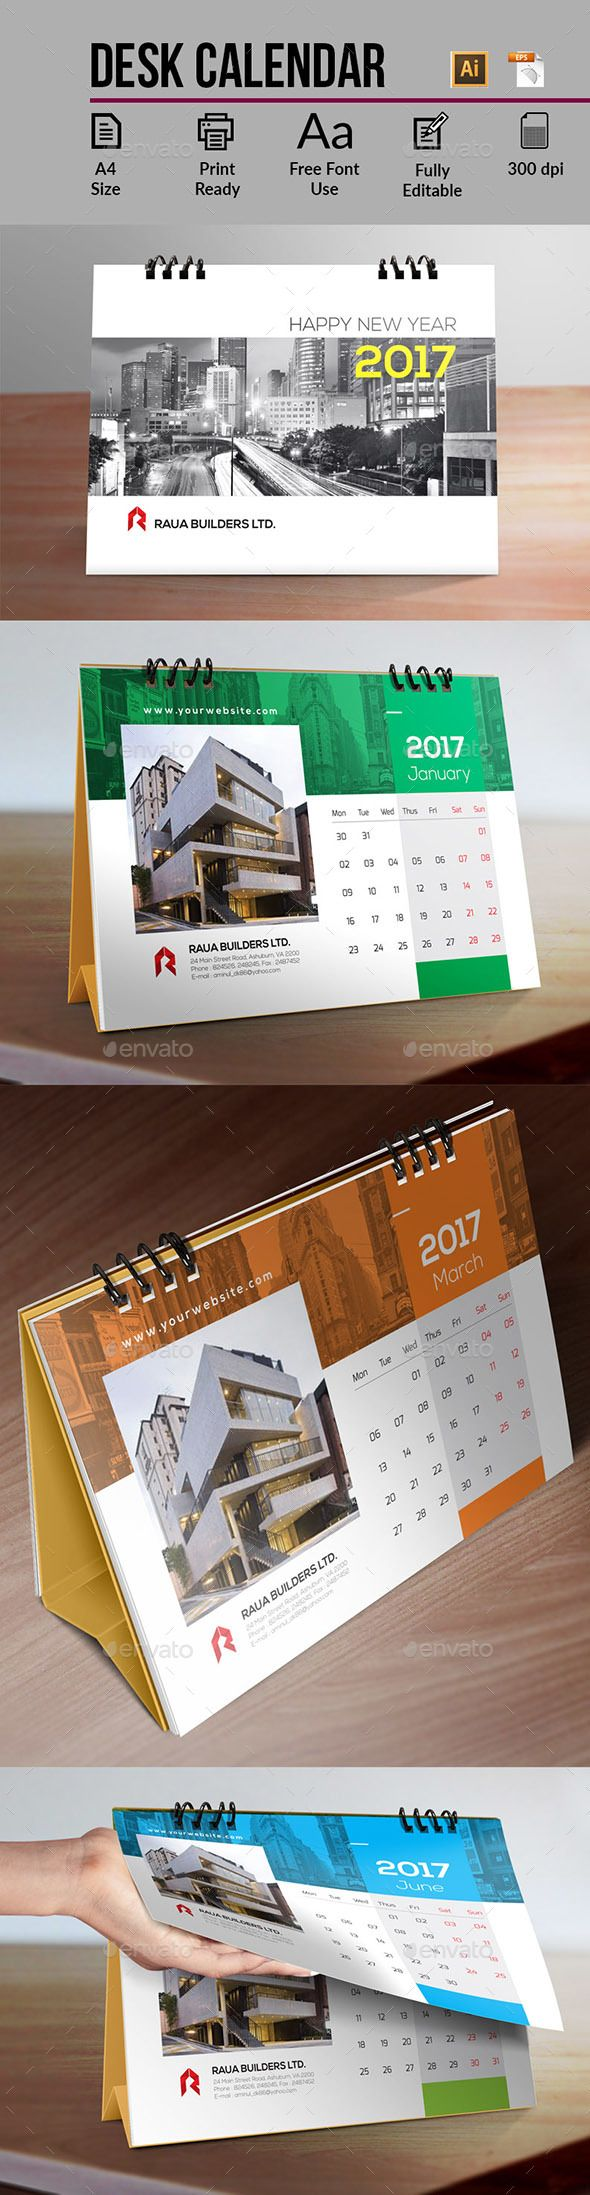 Desk Calendar  — EPS Template #monday #cover • Download ➝ https://graphicriver.net/item/desk-calendar/18091993?ref=pxcr